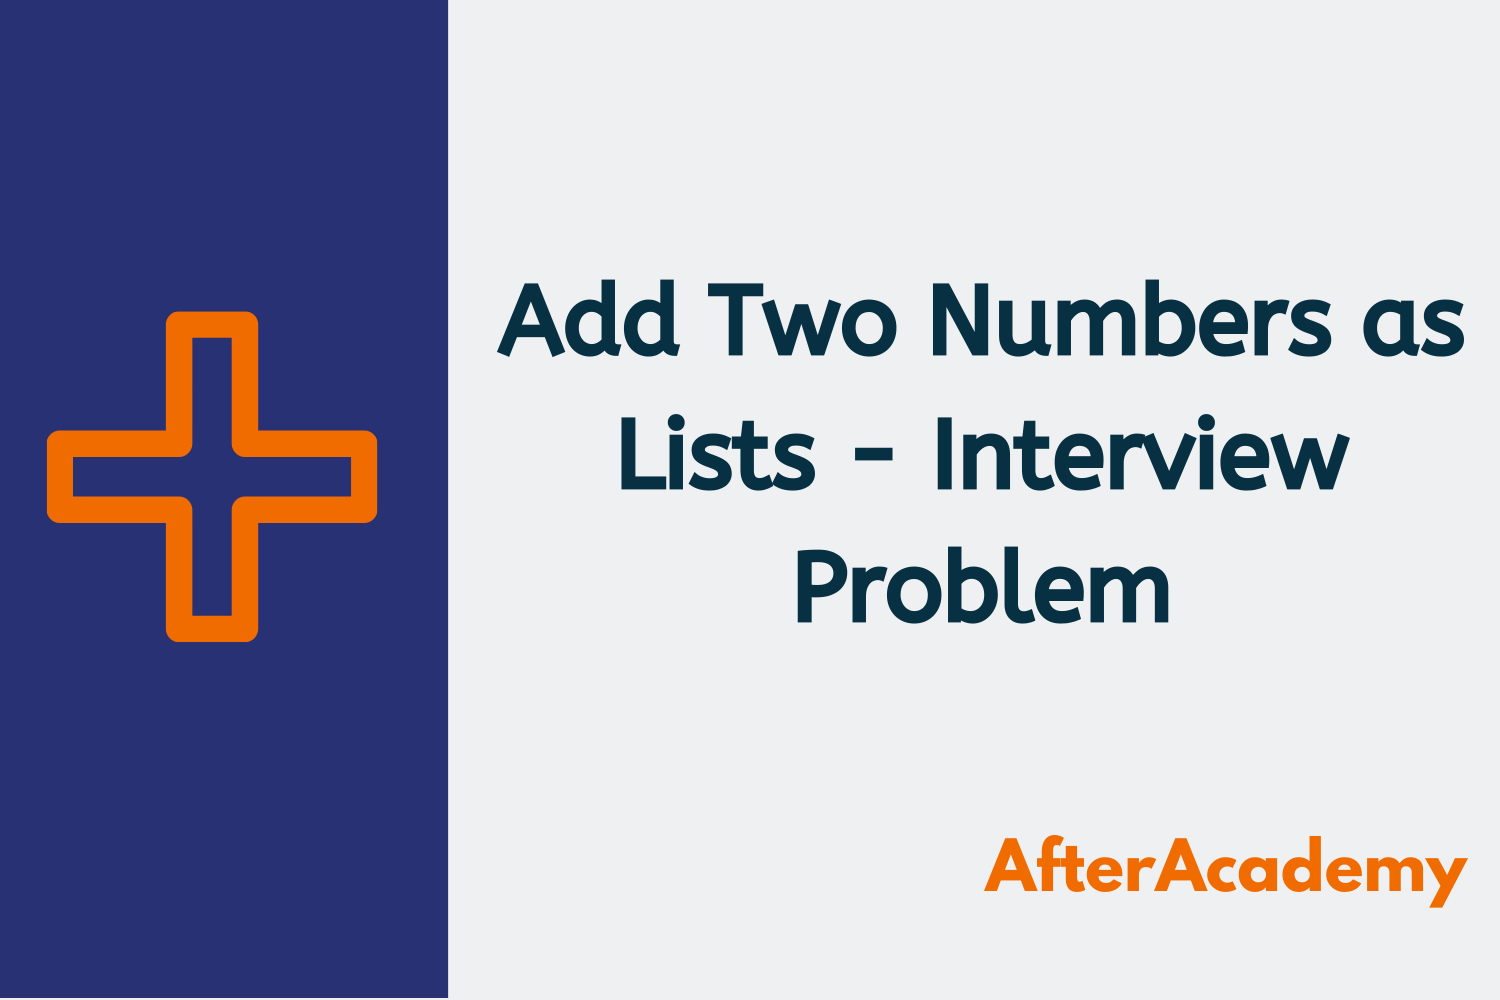 Add Two Numbers as Lists - Interview Problem